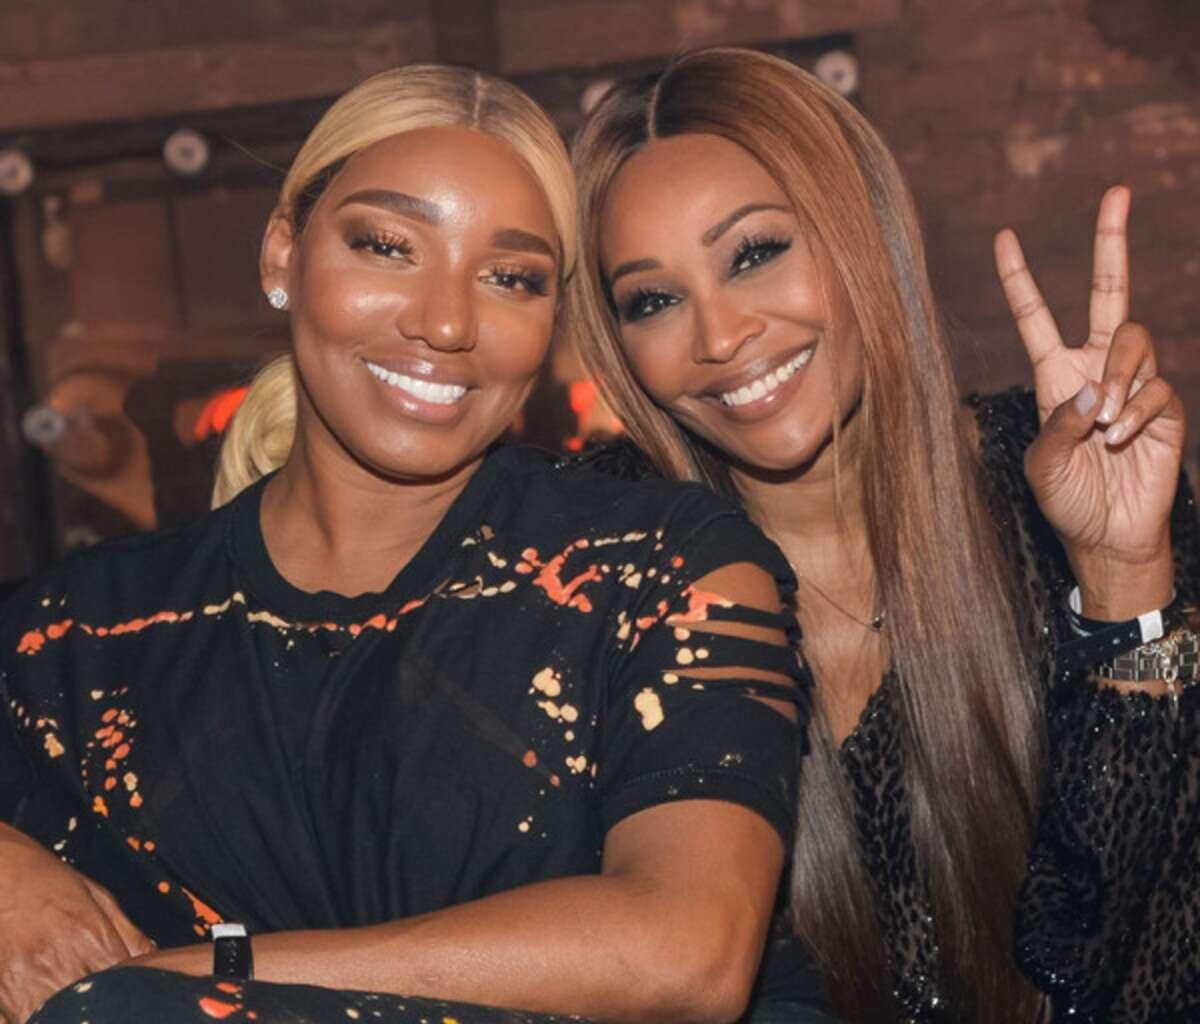 NeNe Leakes's Fans Support Her After She Shares A Few Words About Cynthia Bailey - Watch The Video